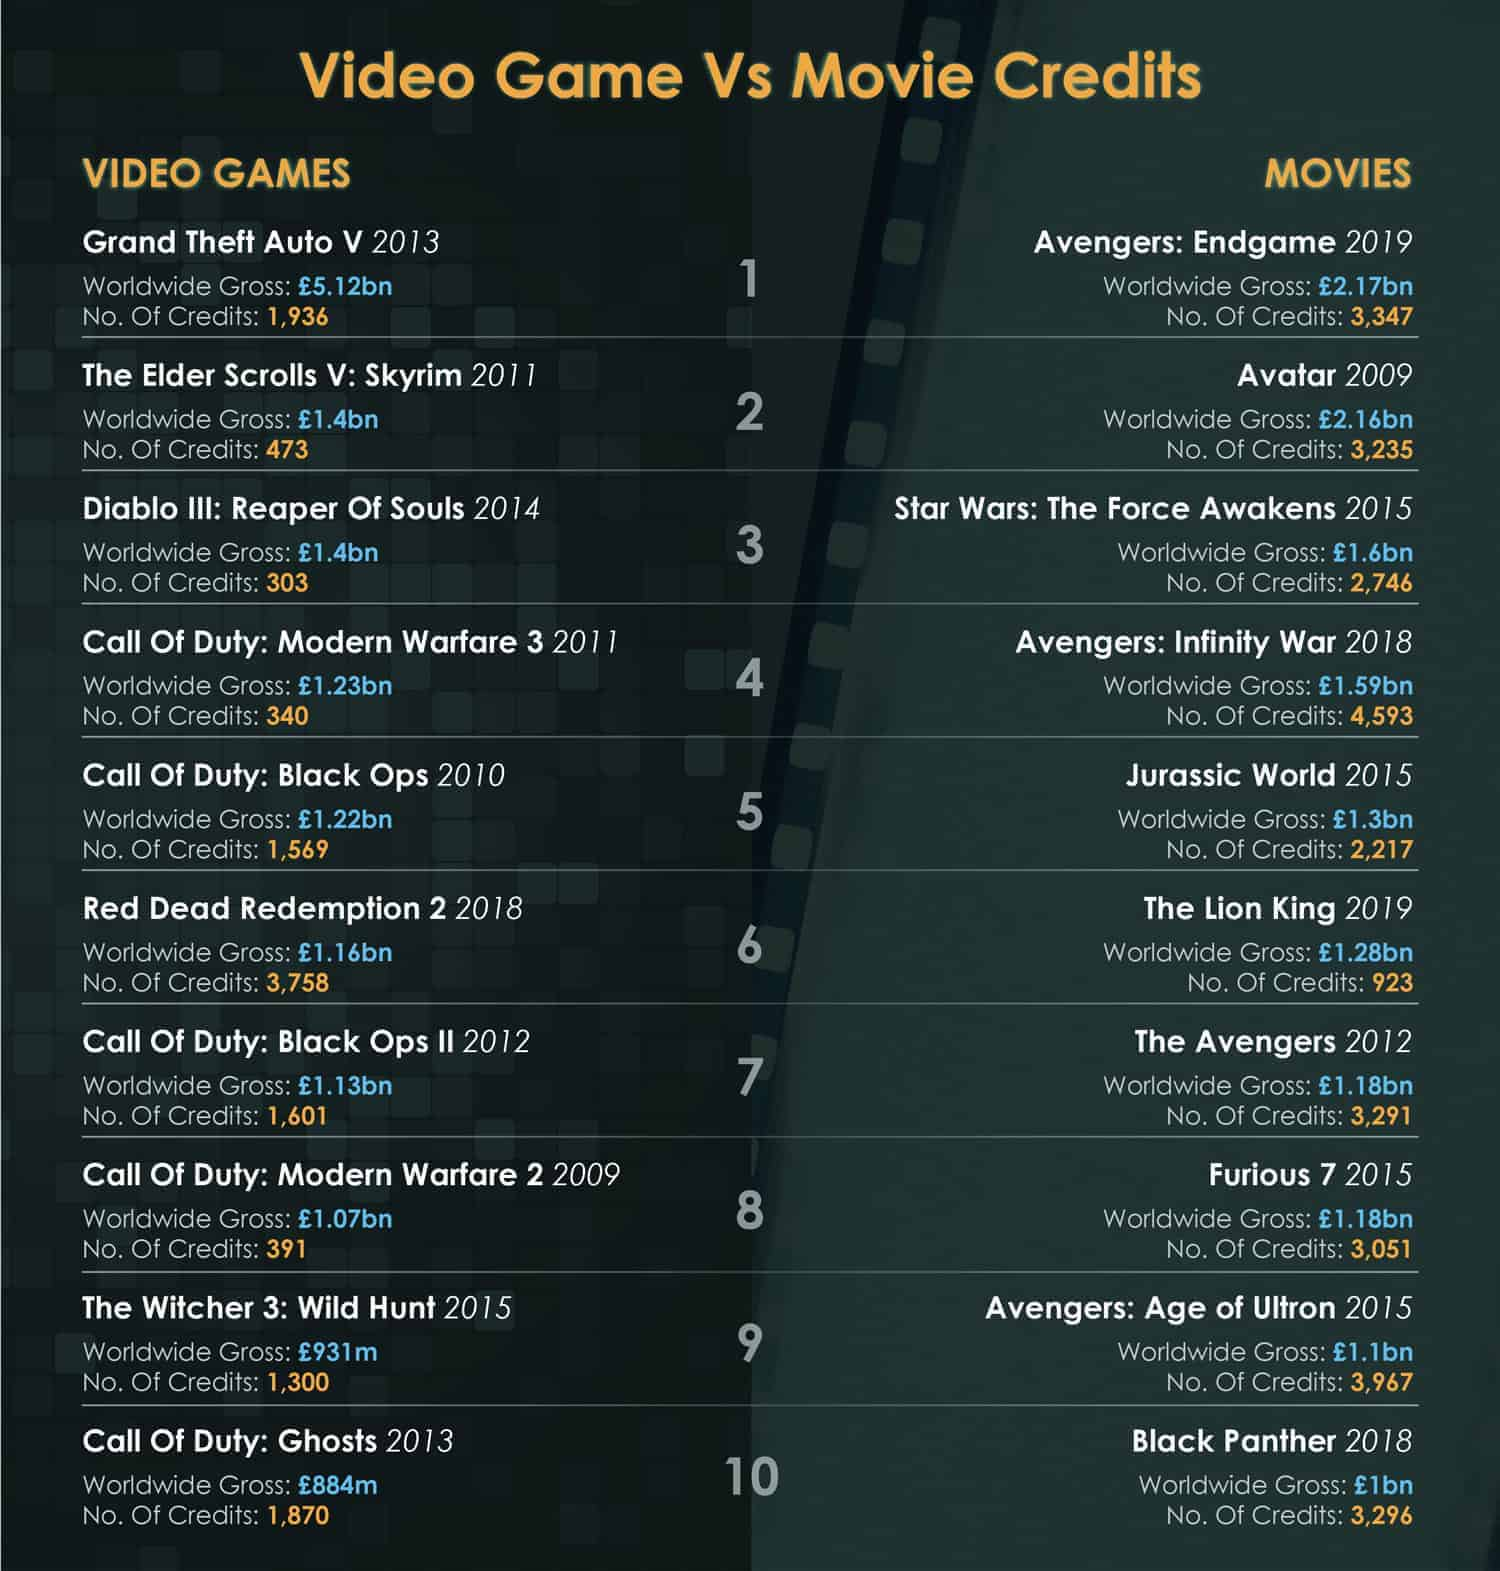 Video Games Vs Movie Credits